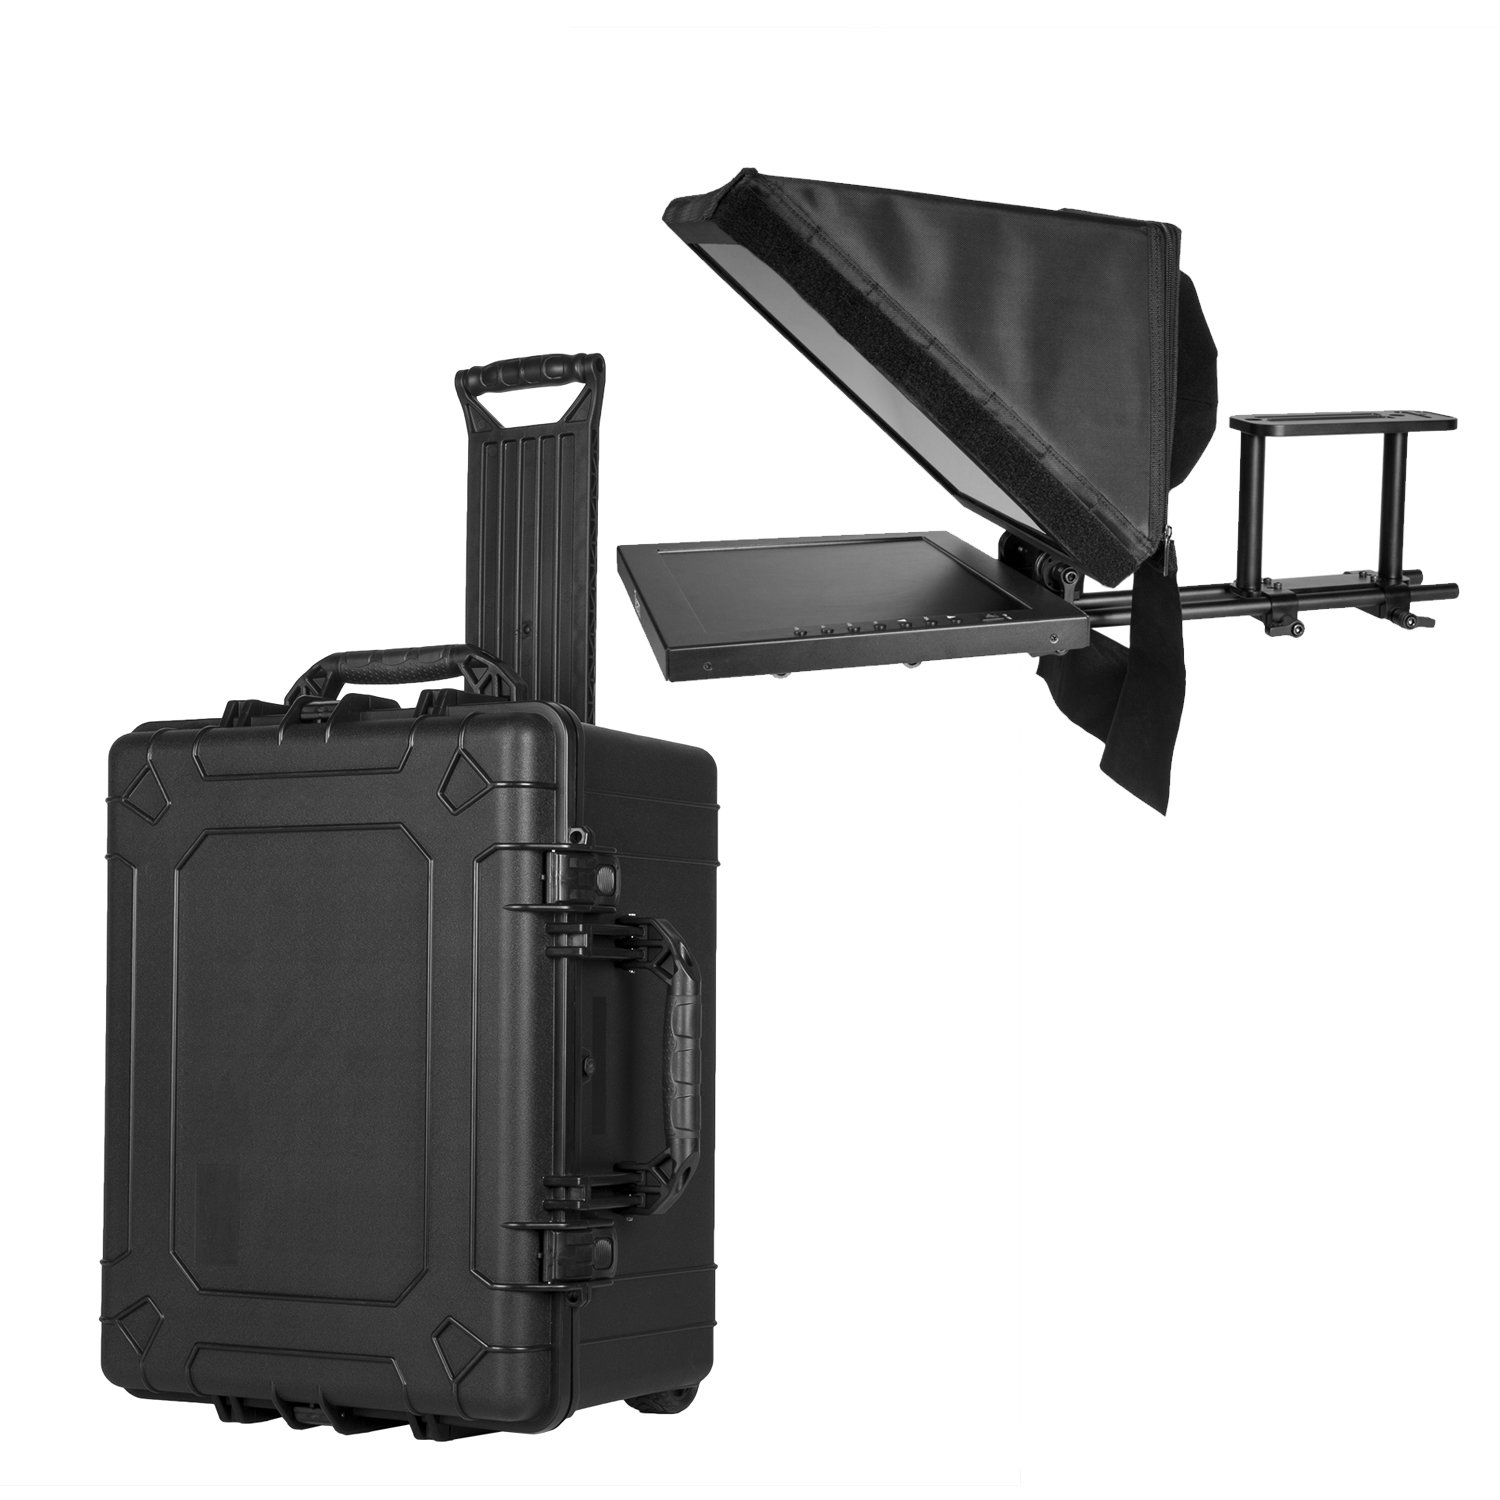 Ikan 15-inch Location/Studio Teleprompter w/Rolling Case, Adjustable Glass Frame, Easy to Assemble, Extreme Clarity (PT3500-TK) - Black by Ikan